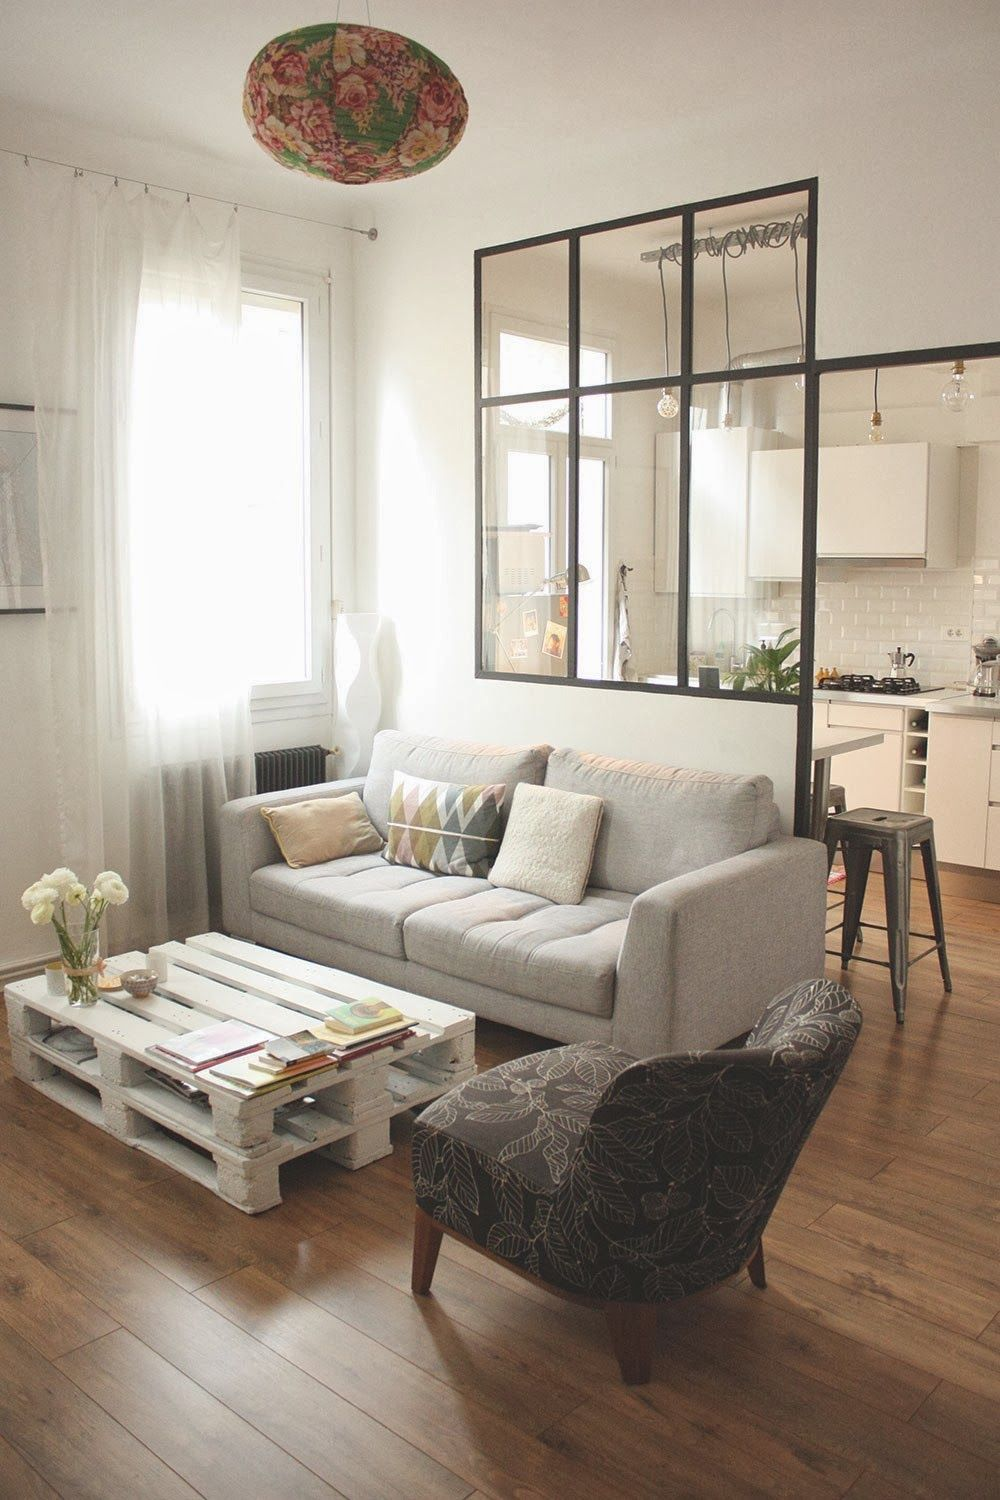 Erno Bloggers Interiors At Home With Blueberry Home Small Living Room Design Small Living Room Decor Small Living Rooms